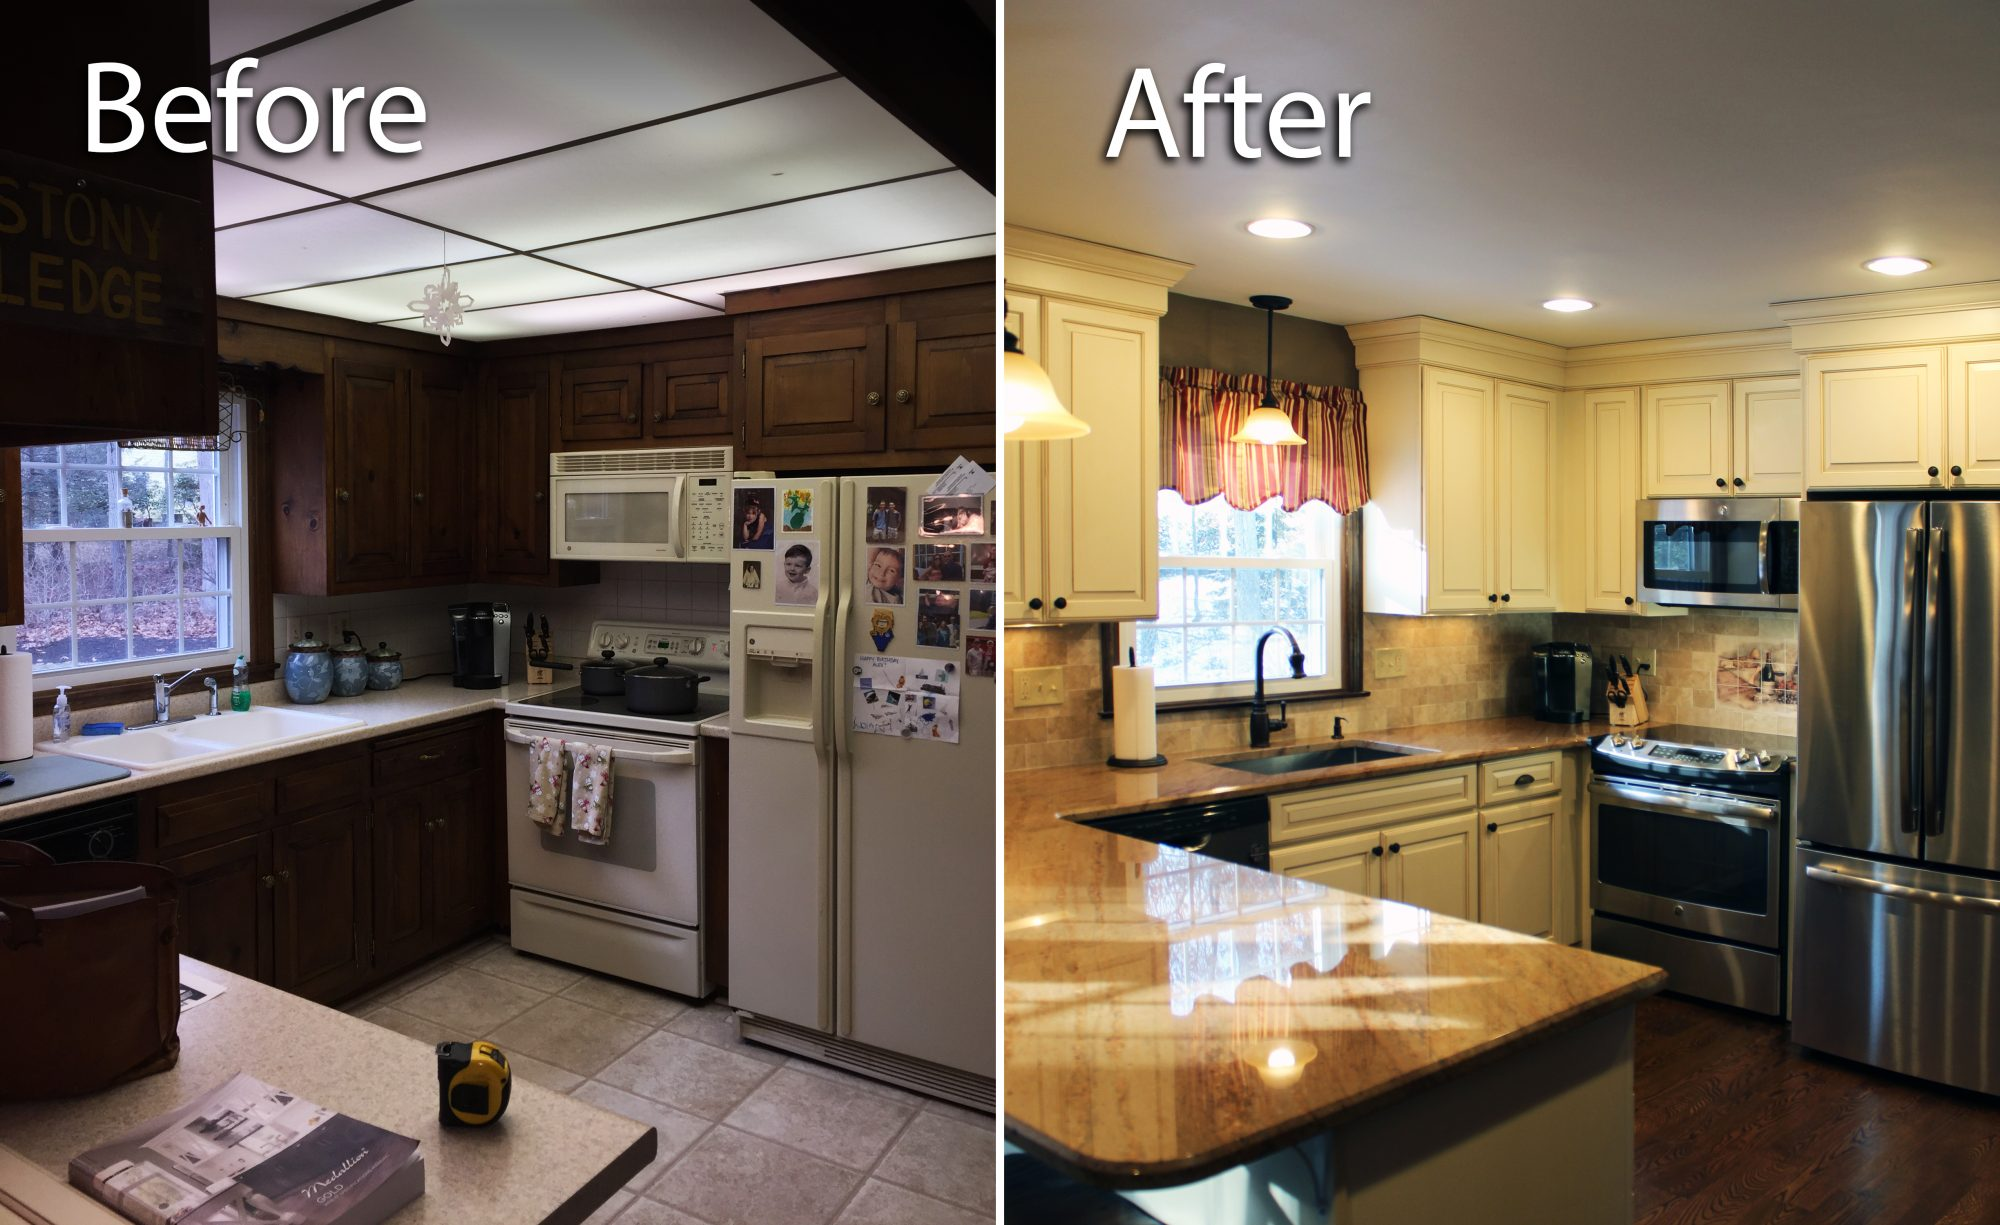 Enfield Handyman Services remodels a kitchen in Somers, CT